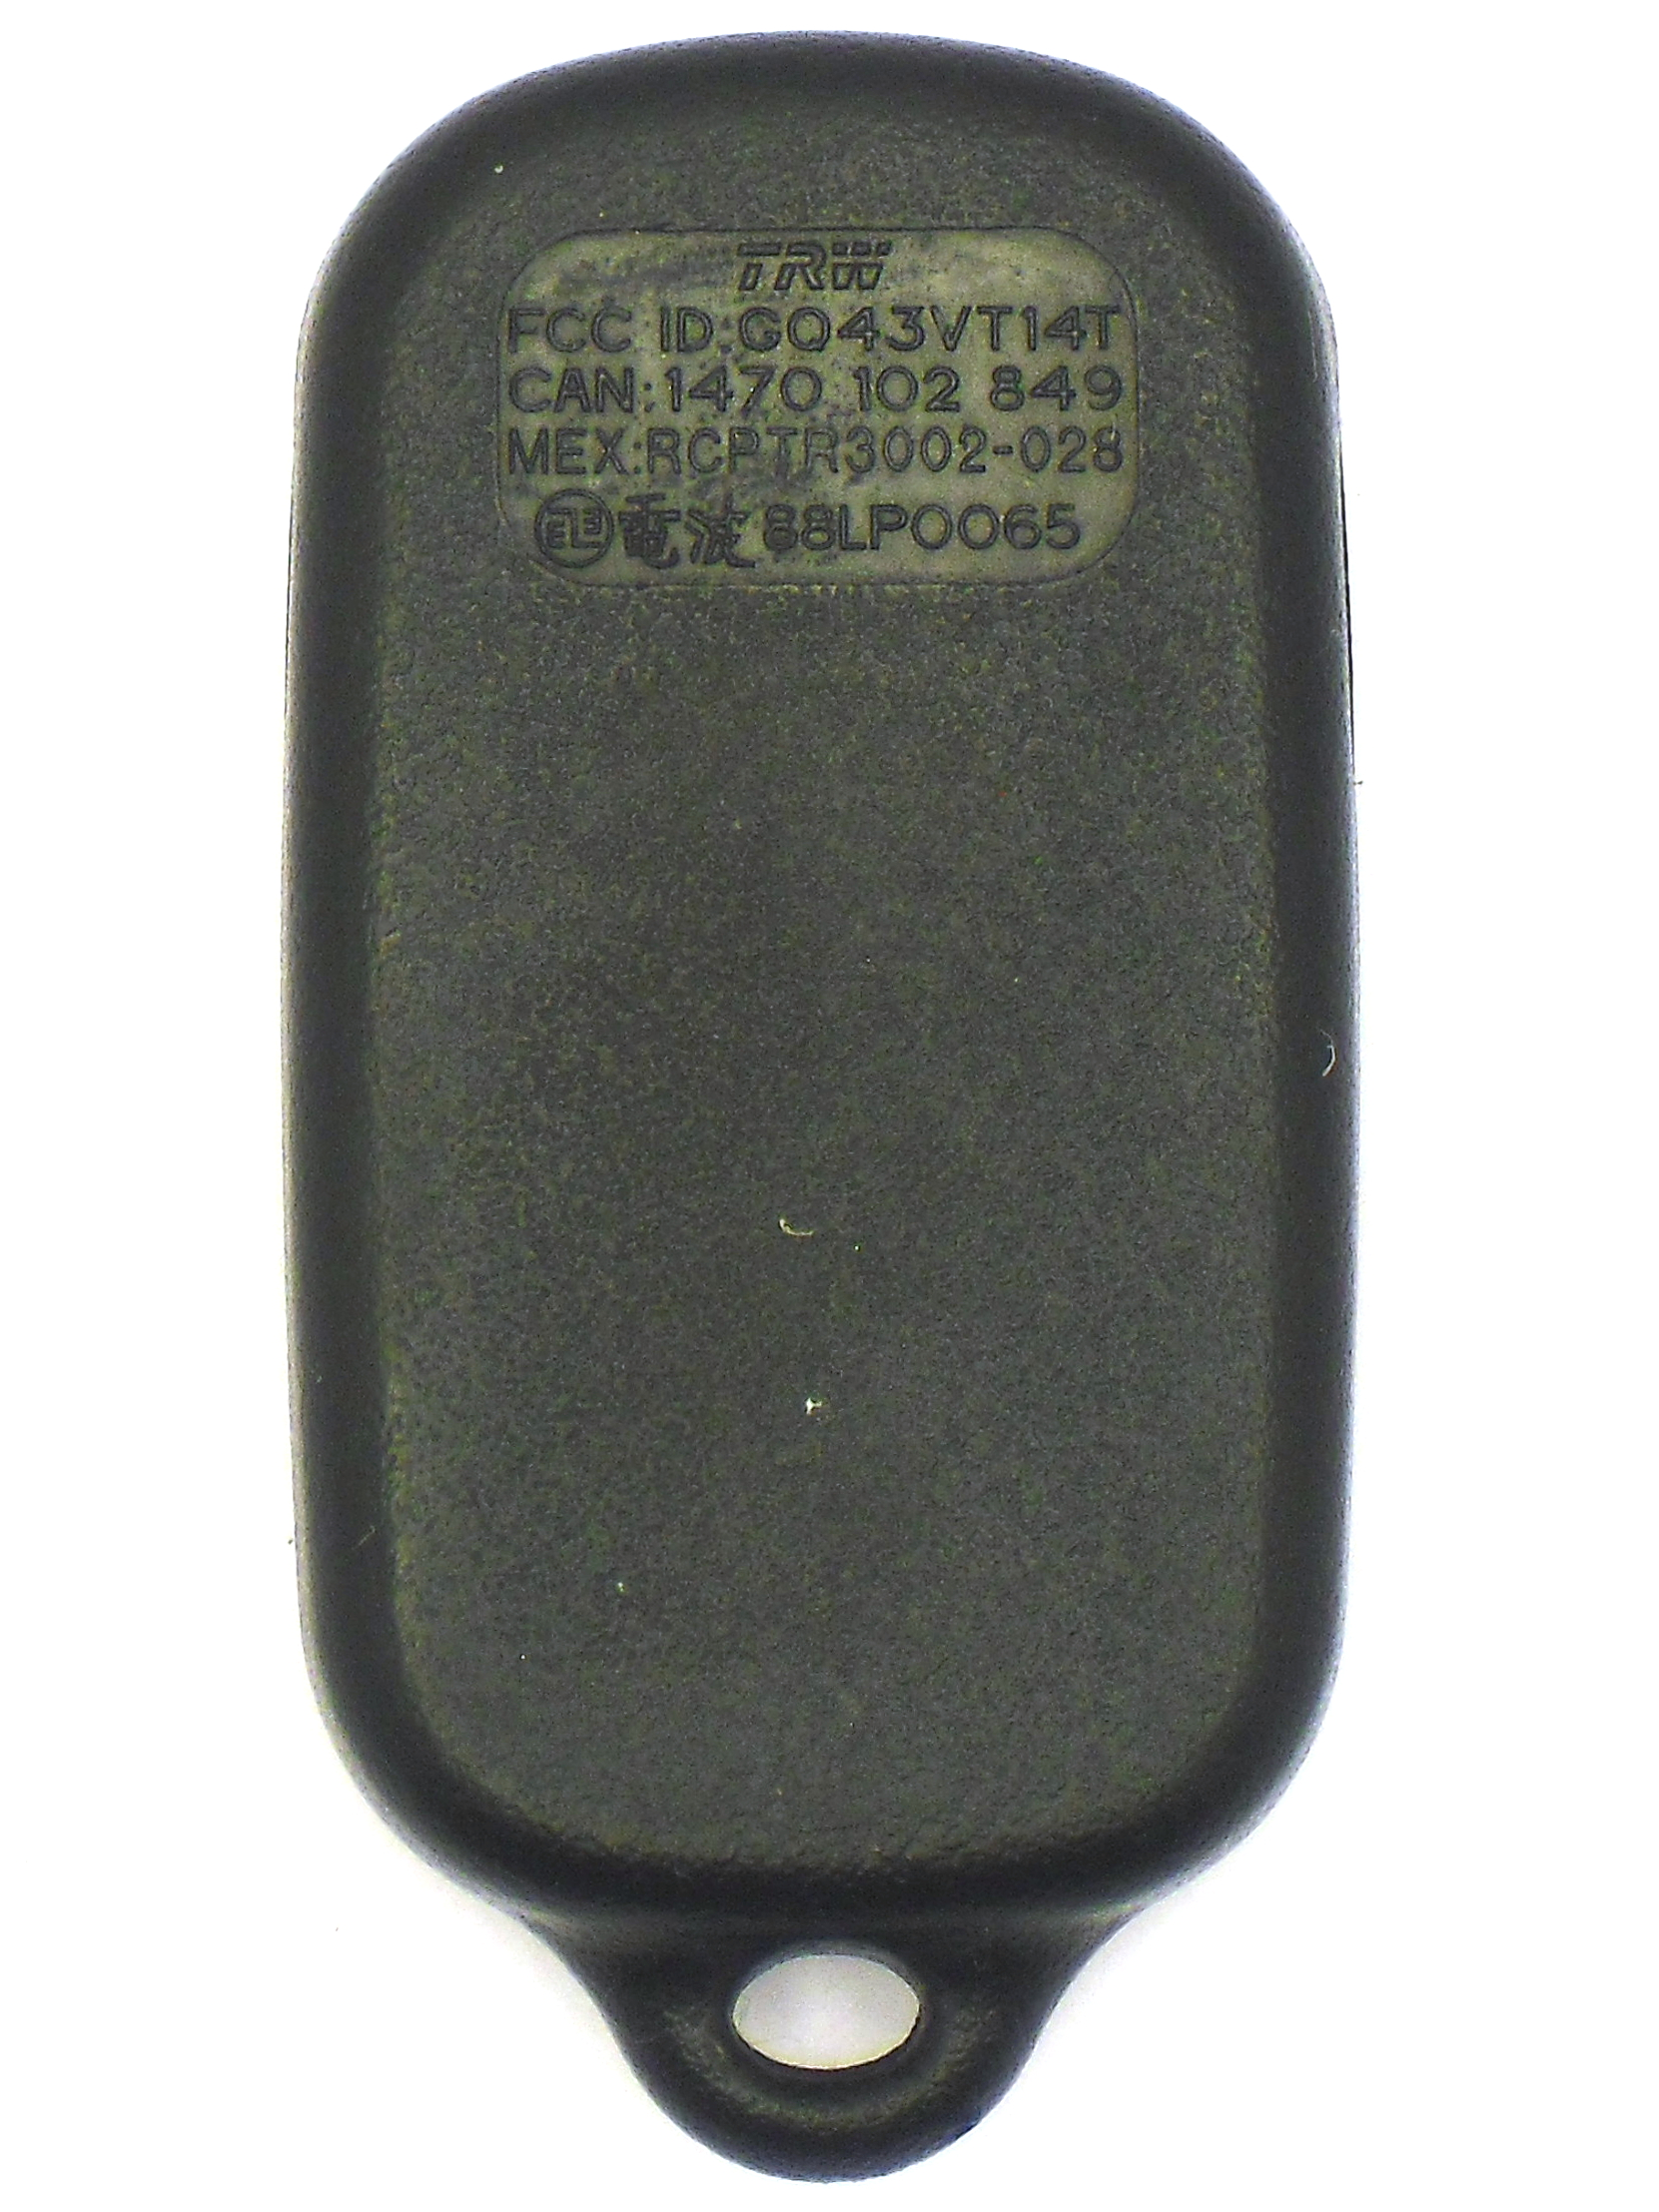 Toyota Keyless Entry Remote - 3 Button